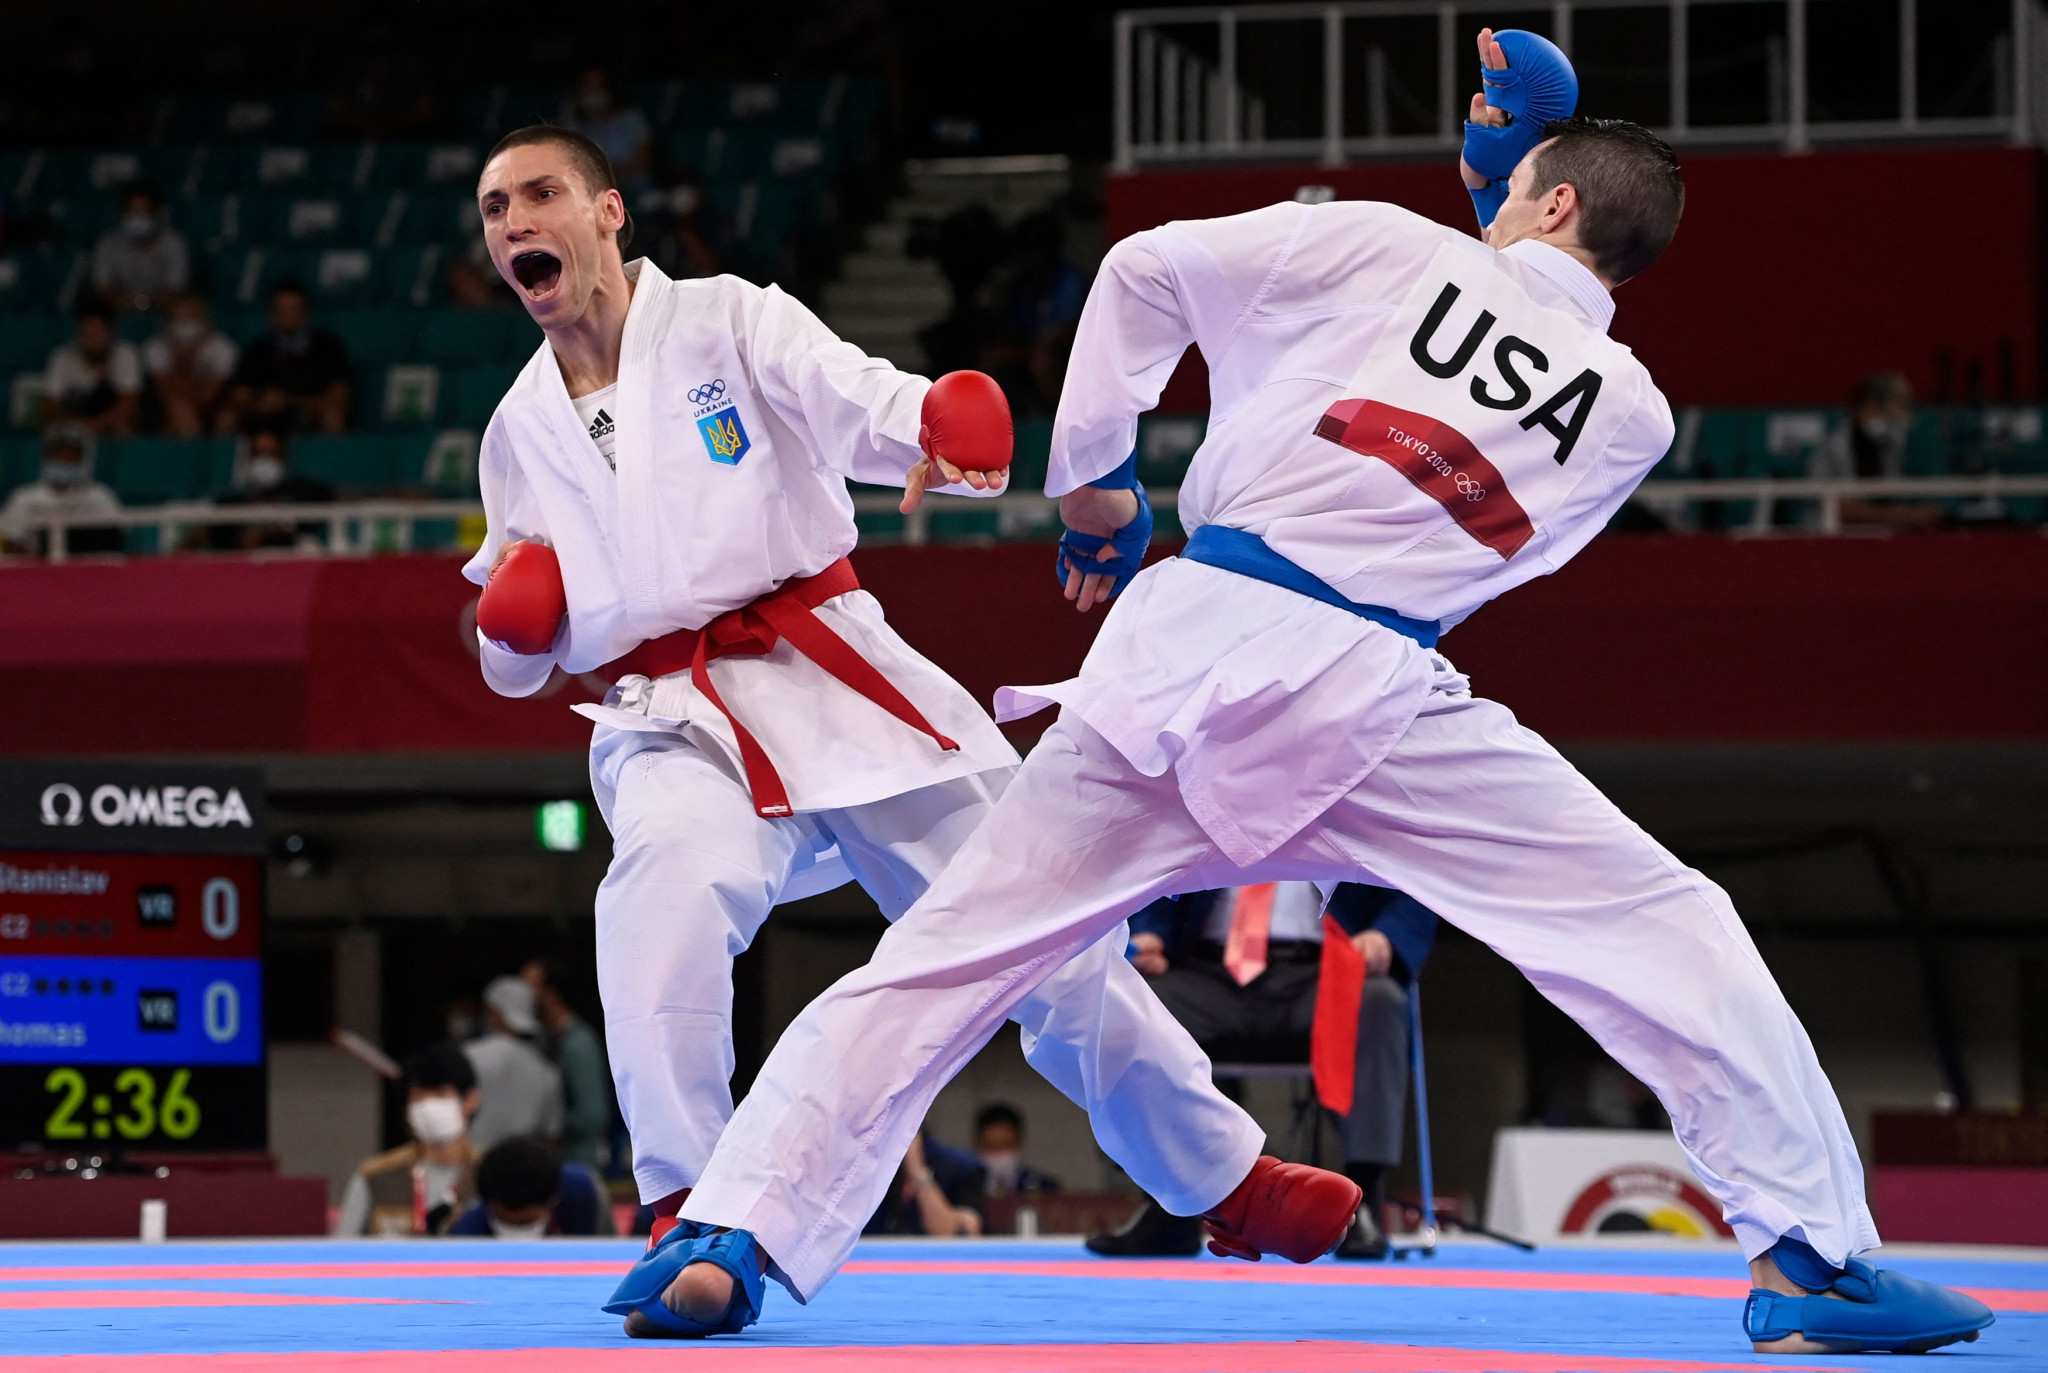 Bawa takes over as interim chair of USA Karate following governance reforms